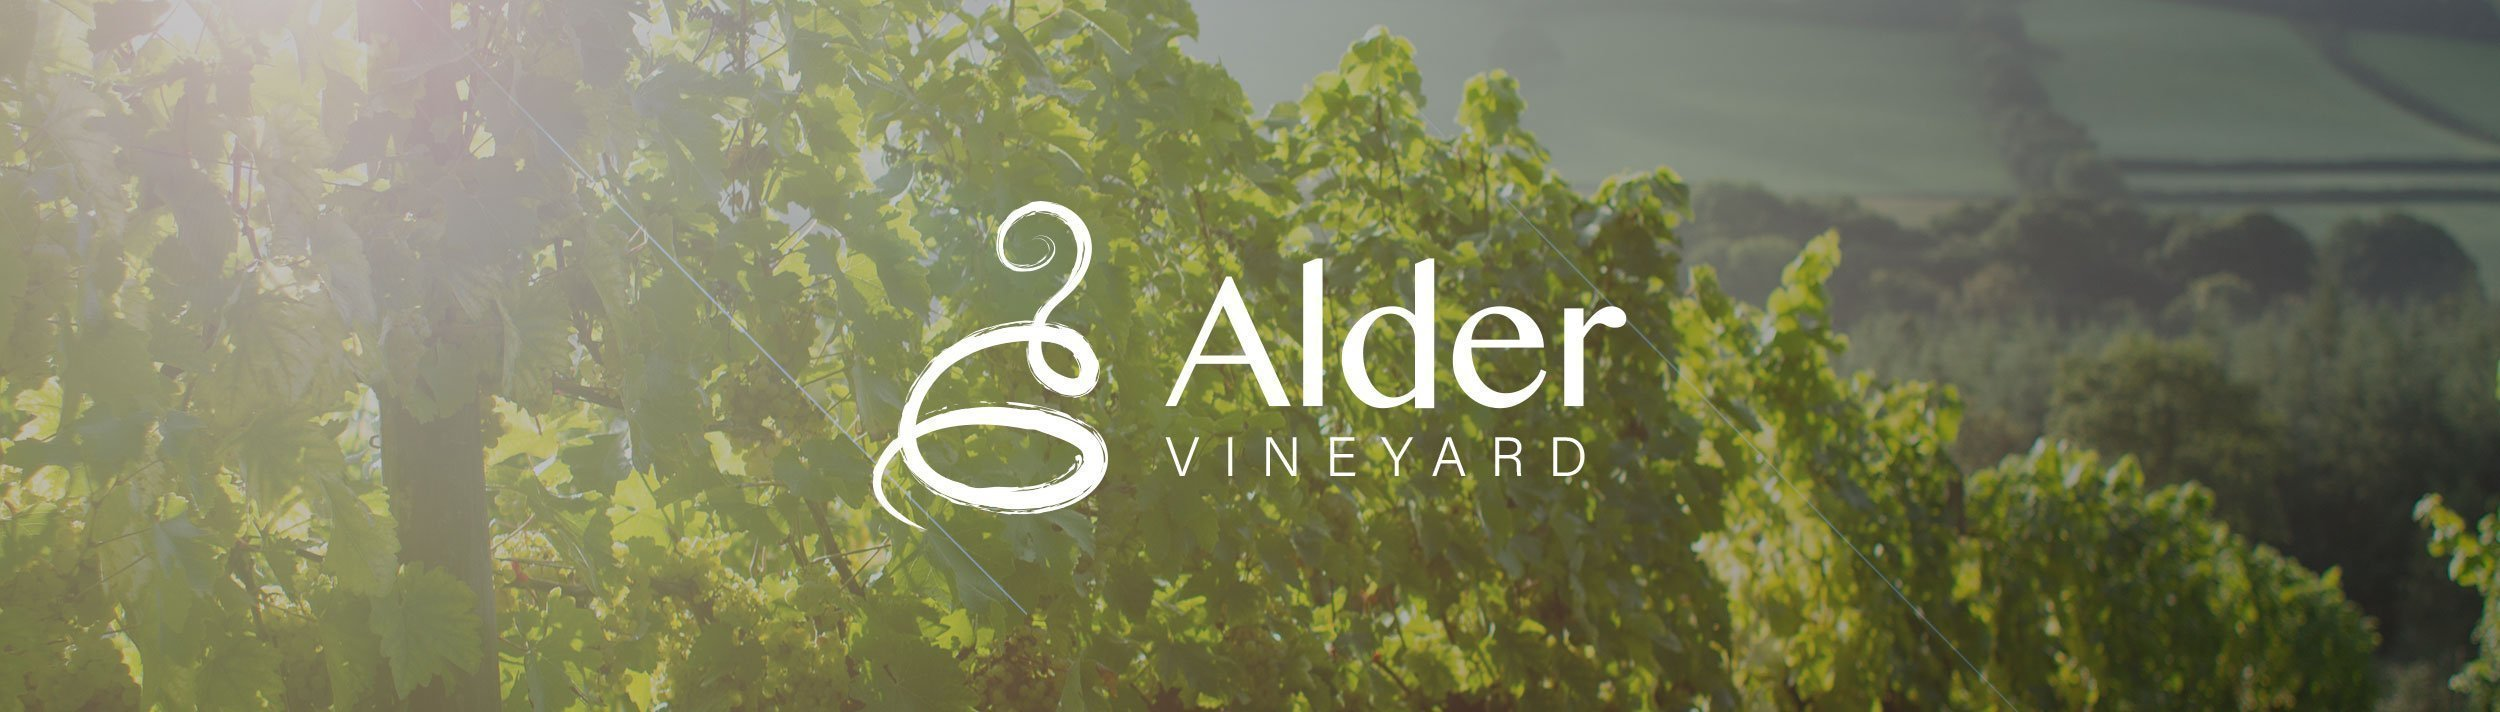 Alder Vineyard new brand